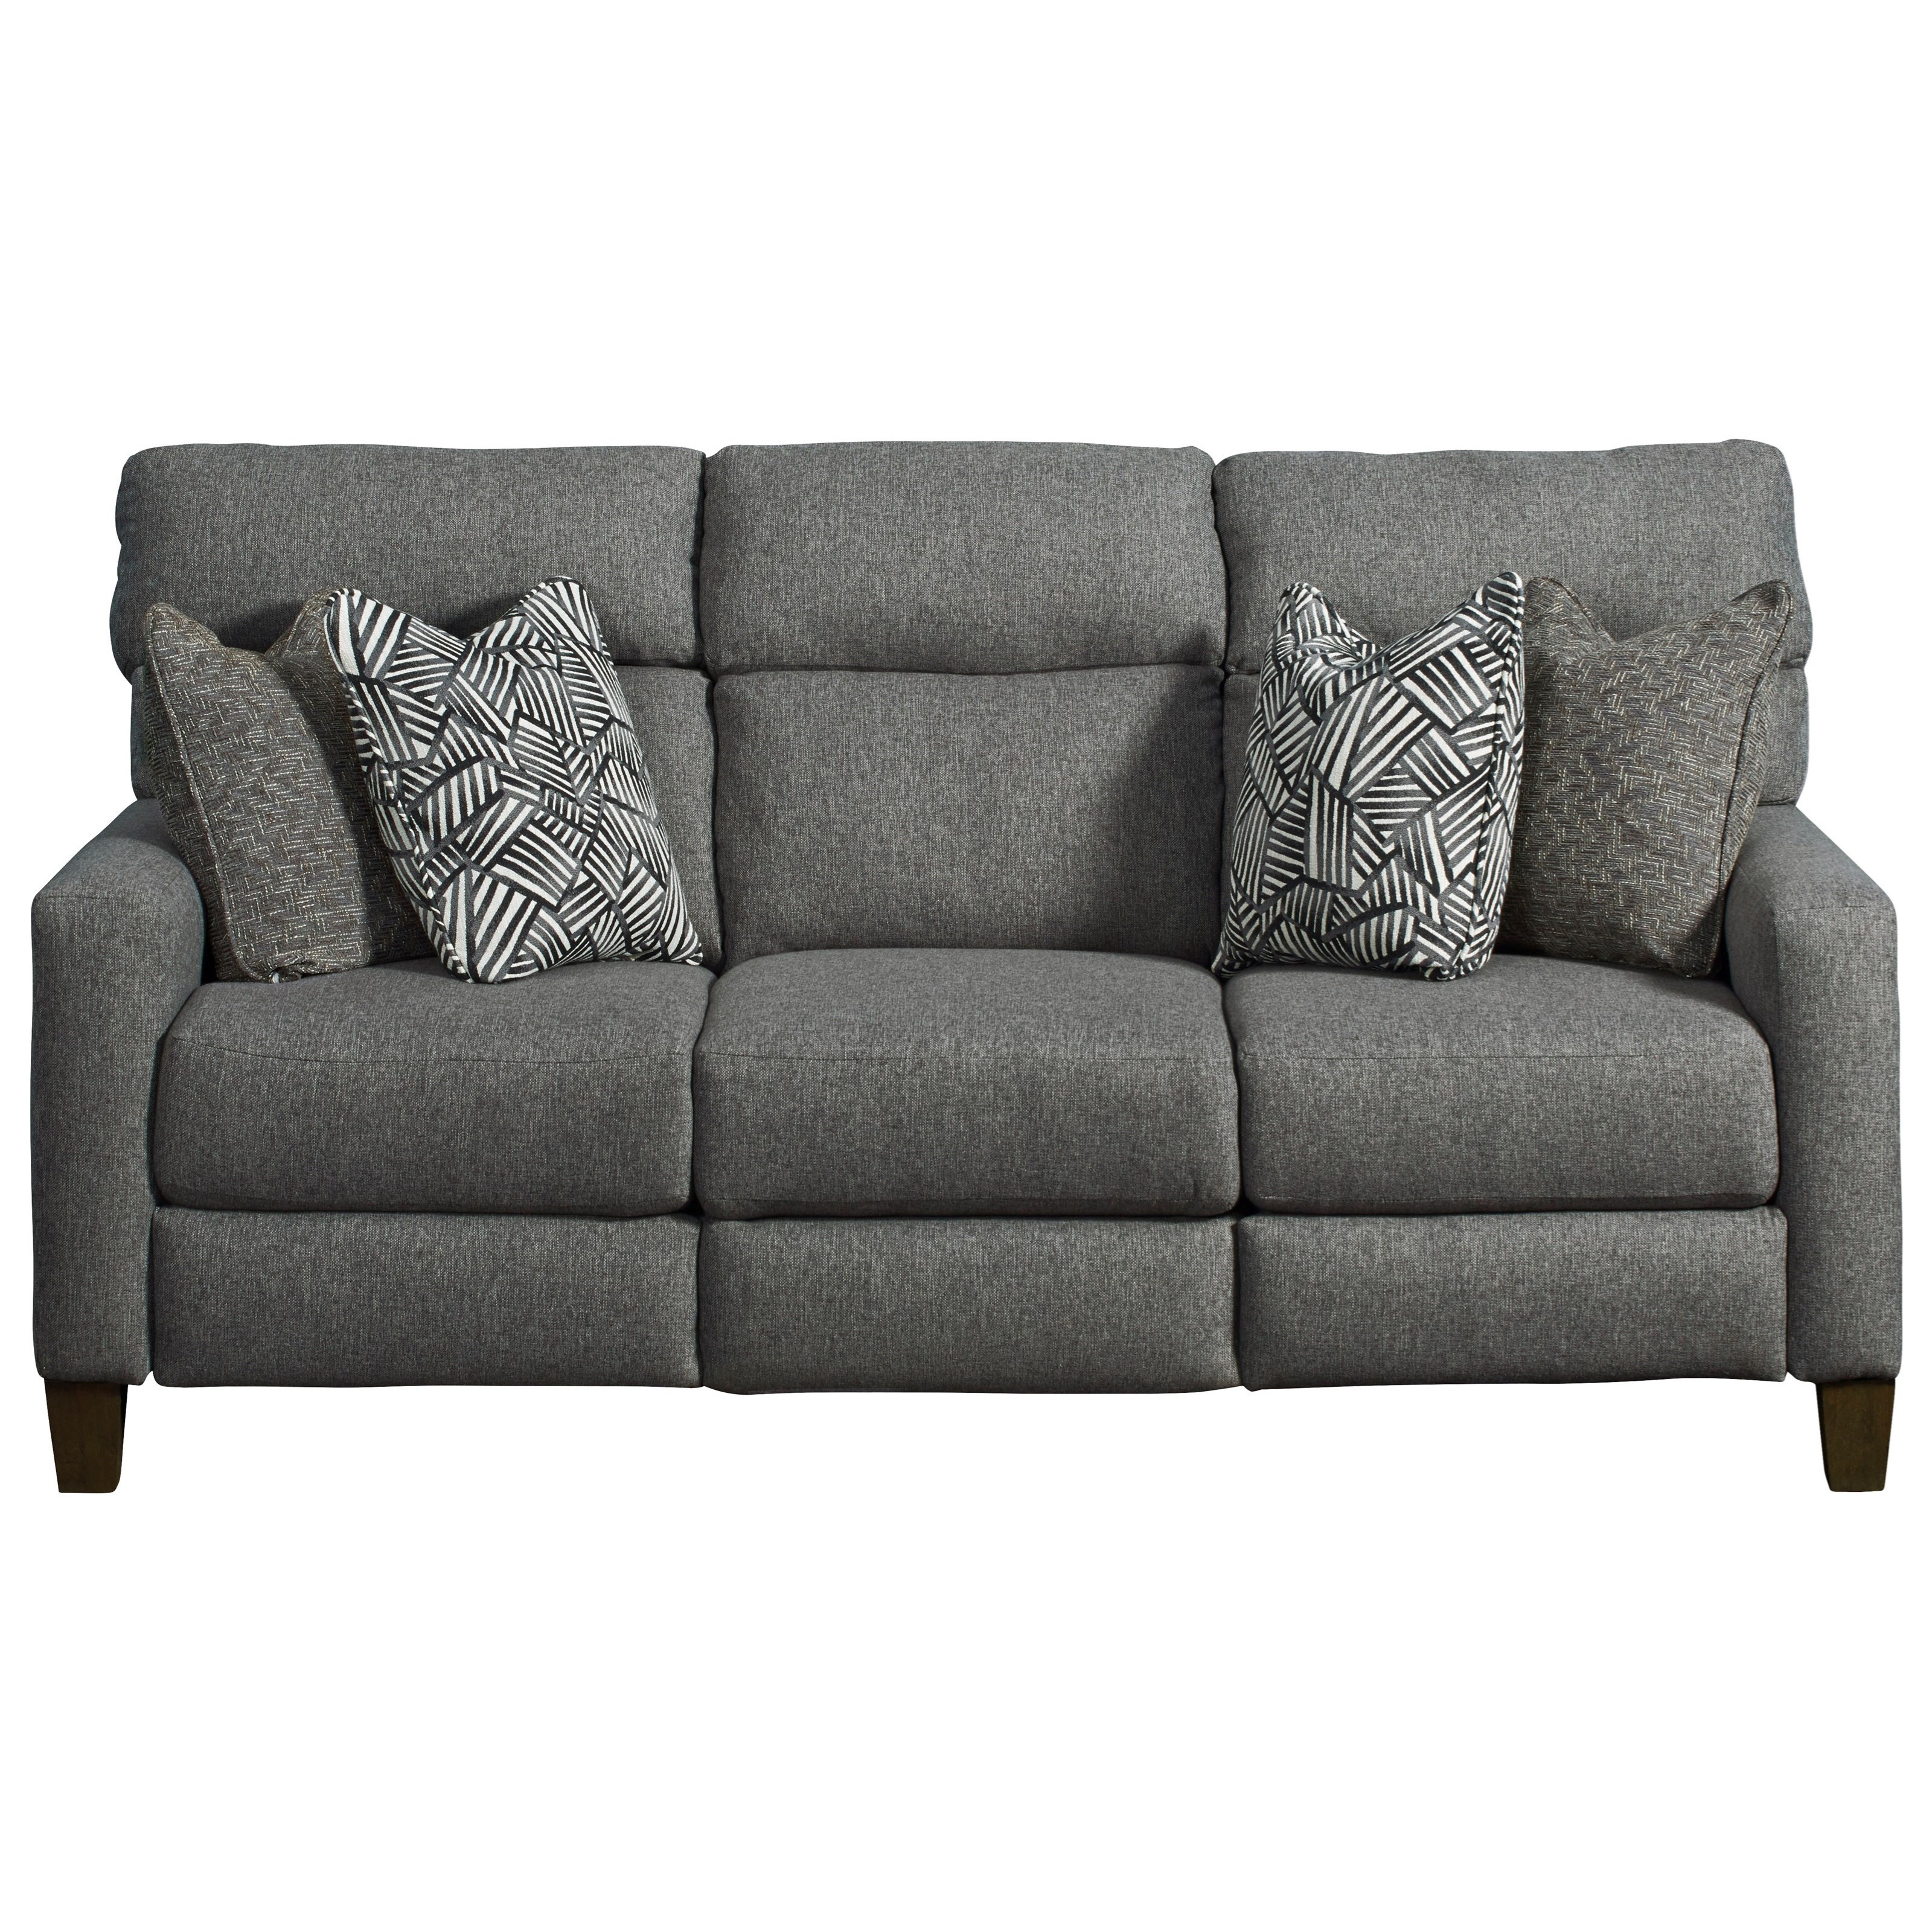 Mt. Vernon Double Reclining Power Sofa with Pillows by Southern Motion at Value City Furniture